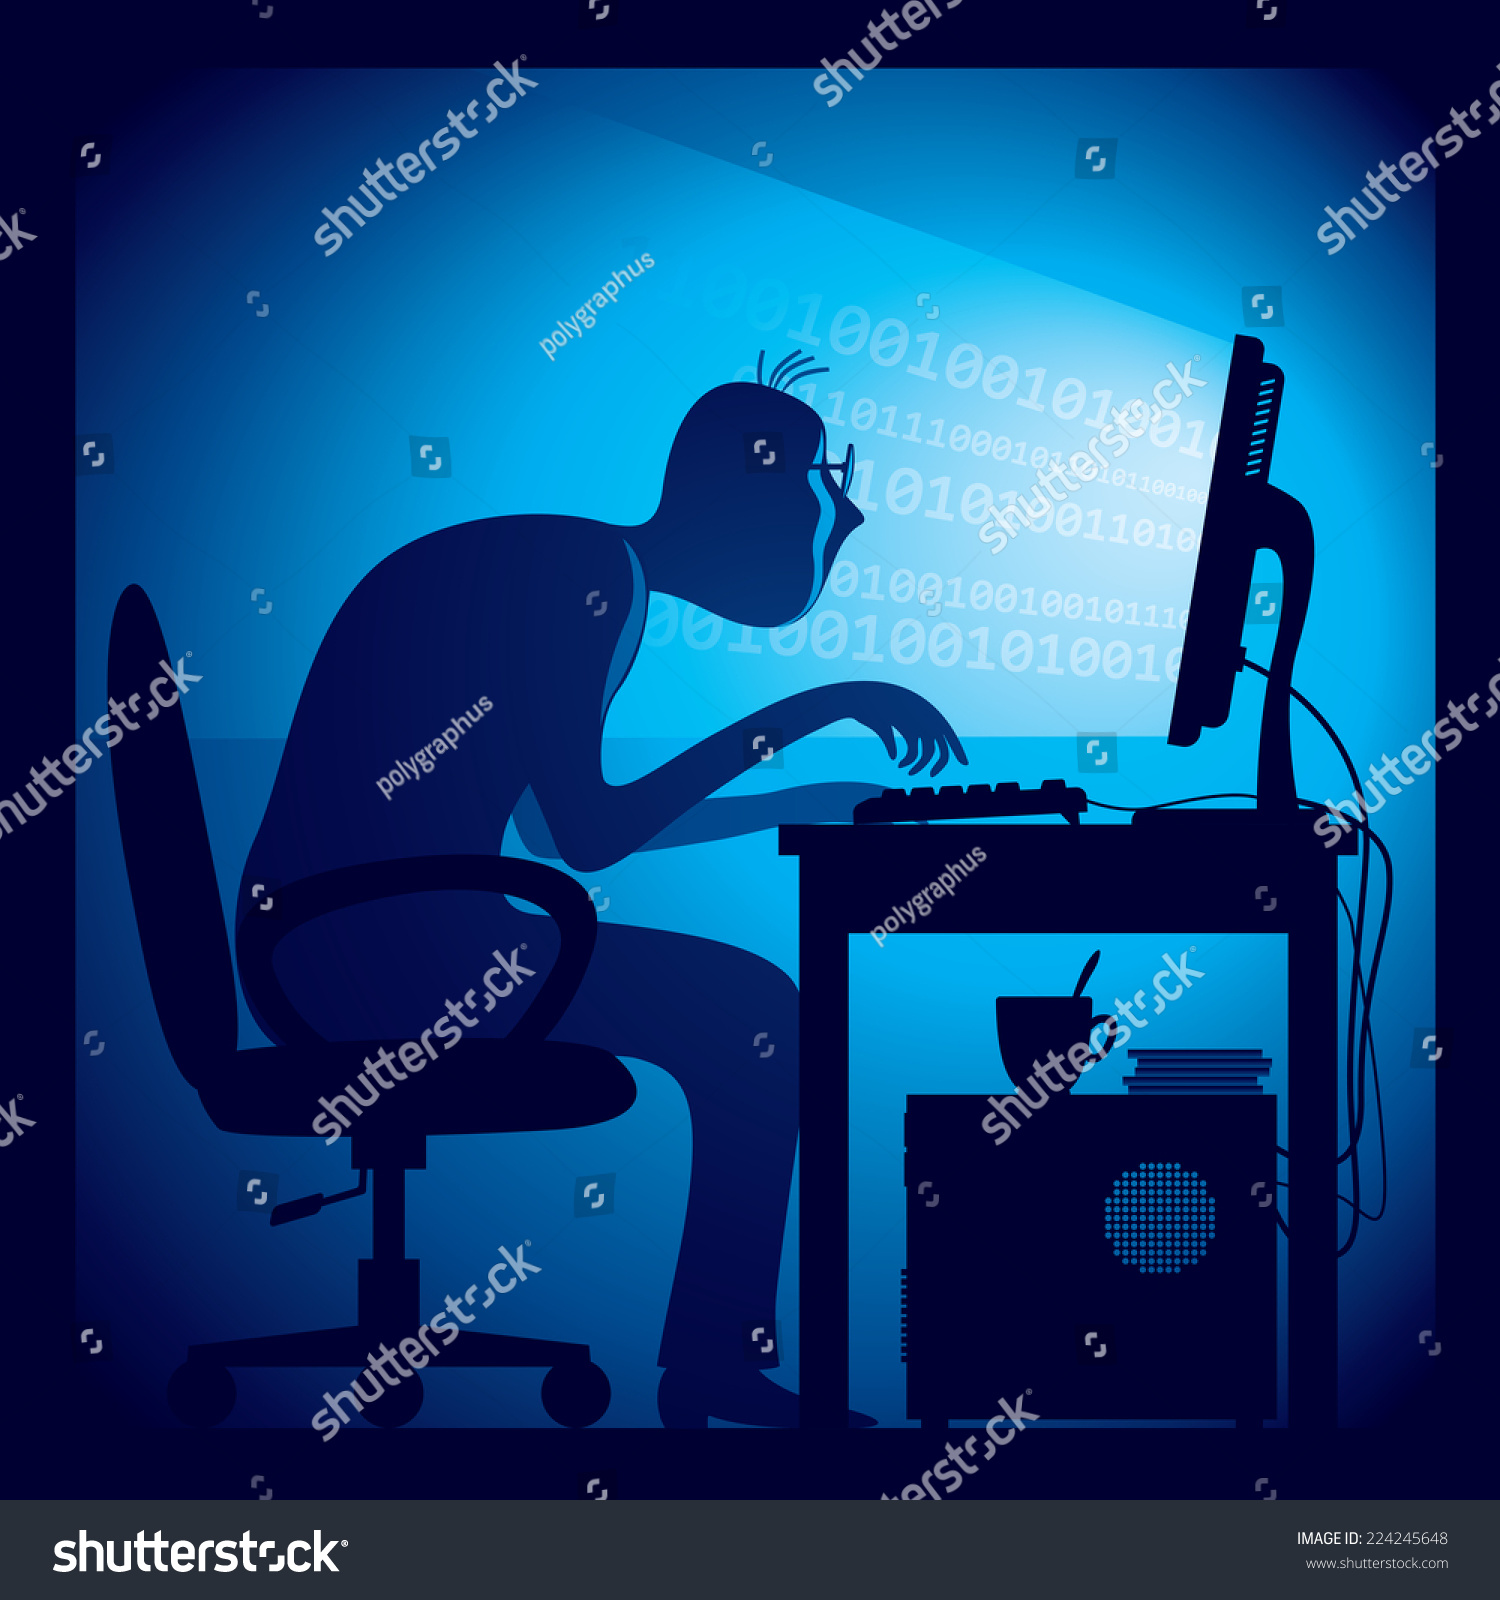 Stock Vector A Hacker